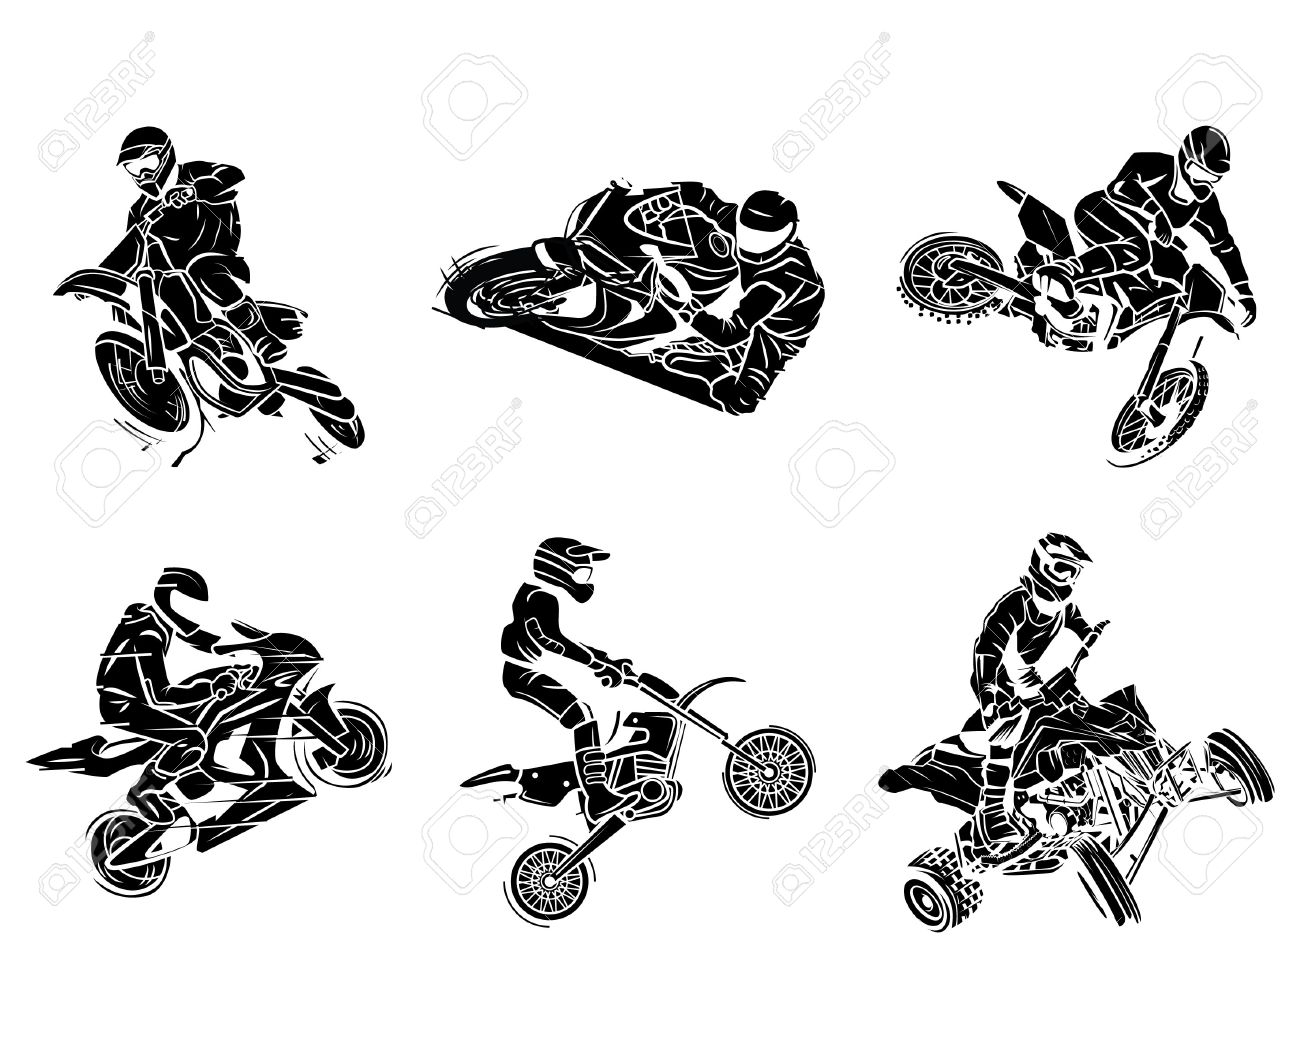 Motorbike Tattoo Collection Royalty Free Cliparts Vectors And